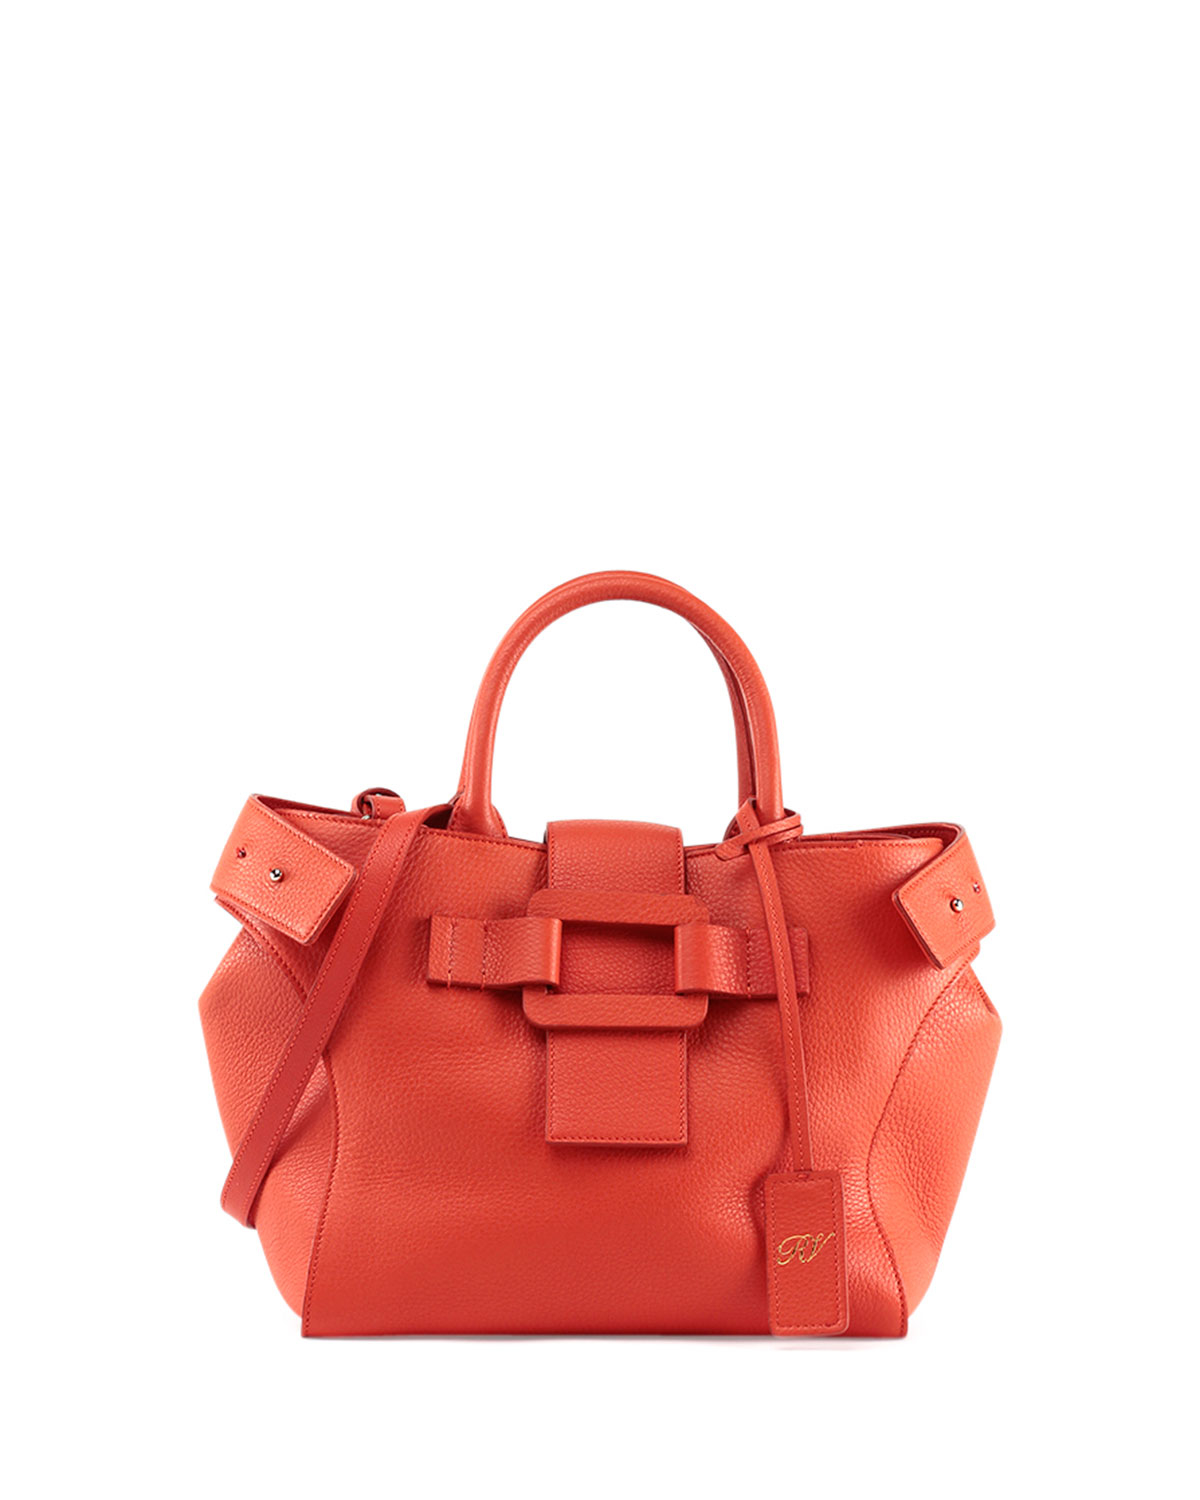 roger vivier pilgrim de jour small shopping tote bag in